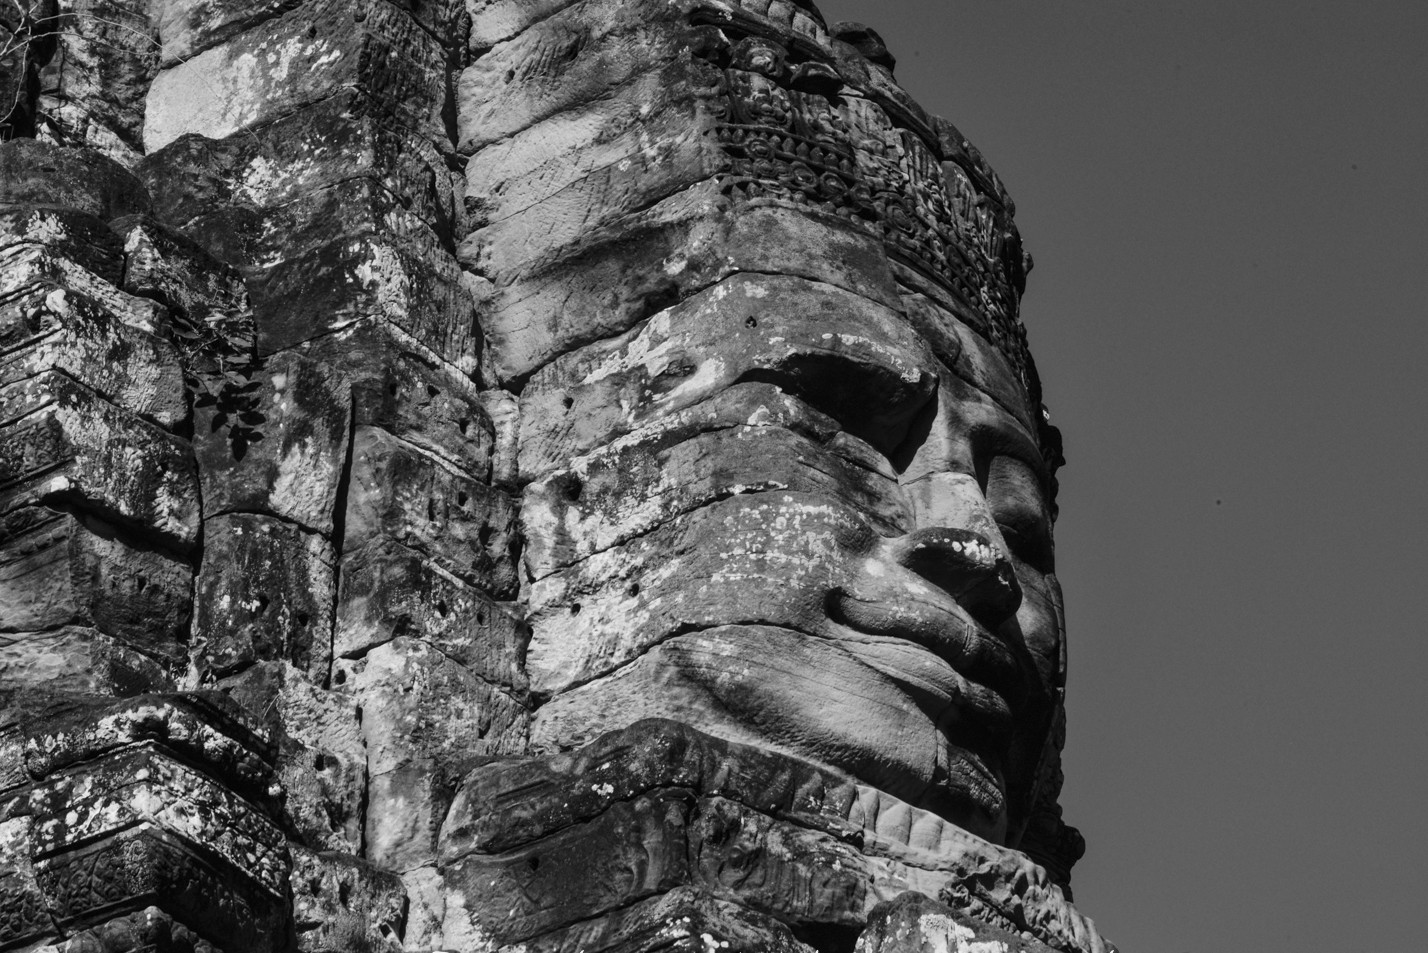 cambodia-photo-tours-angkor-wat-statues-1-2